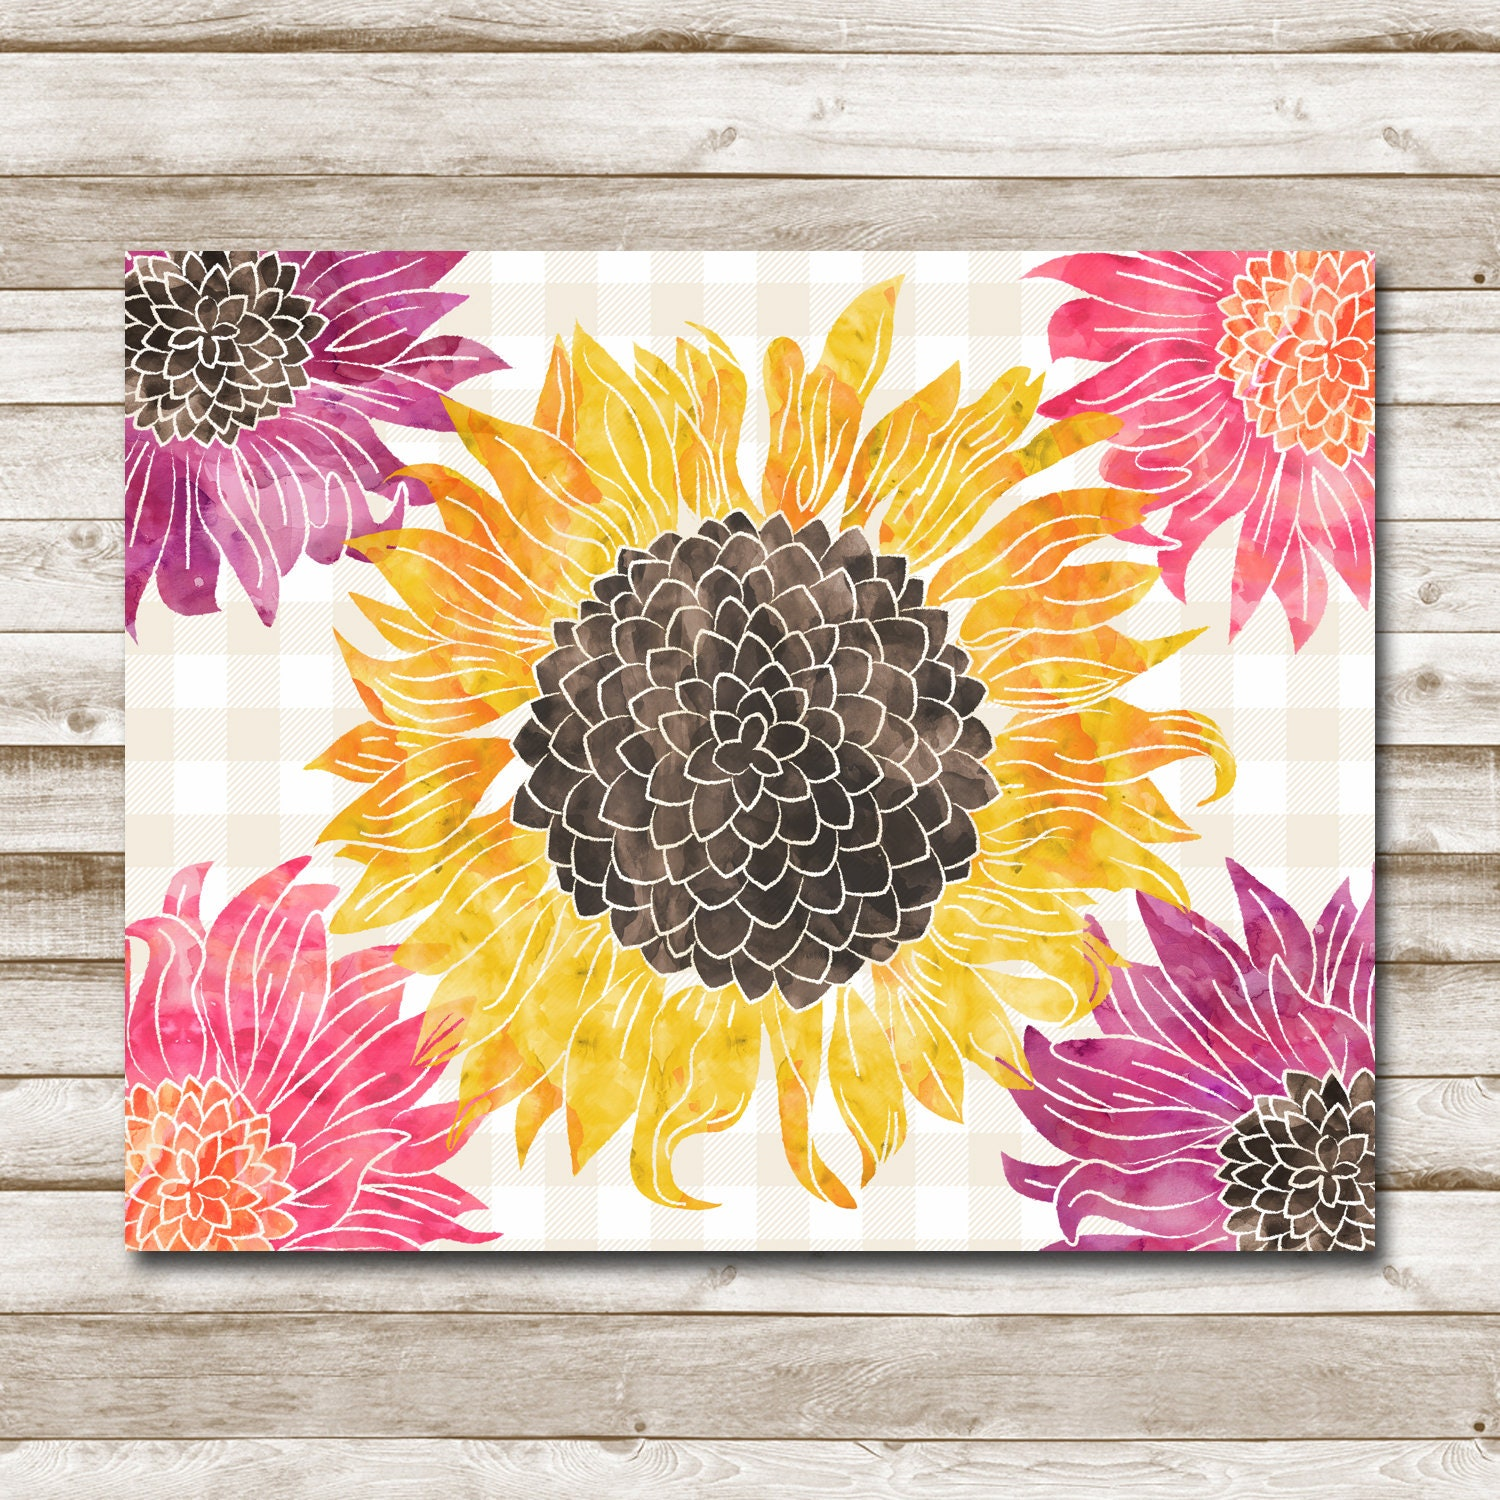 photograph regarding Sunflower Printable referred to as Sunflower Printable Watercolor Buffalo Plaid Floral Print Dwelling Decor Office environment Decor Sunflower Nursery 5x7 8x10 11x14 16x20 Staging Decor